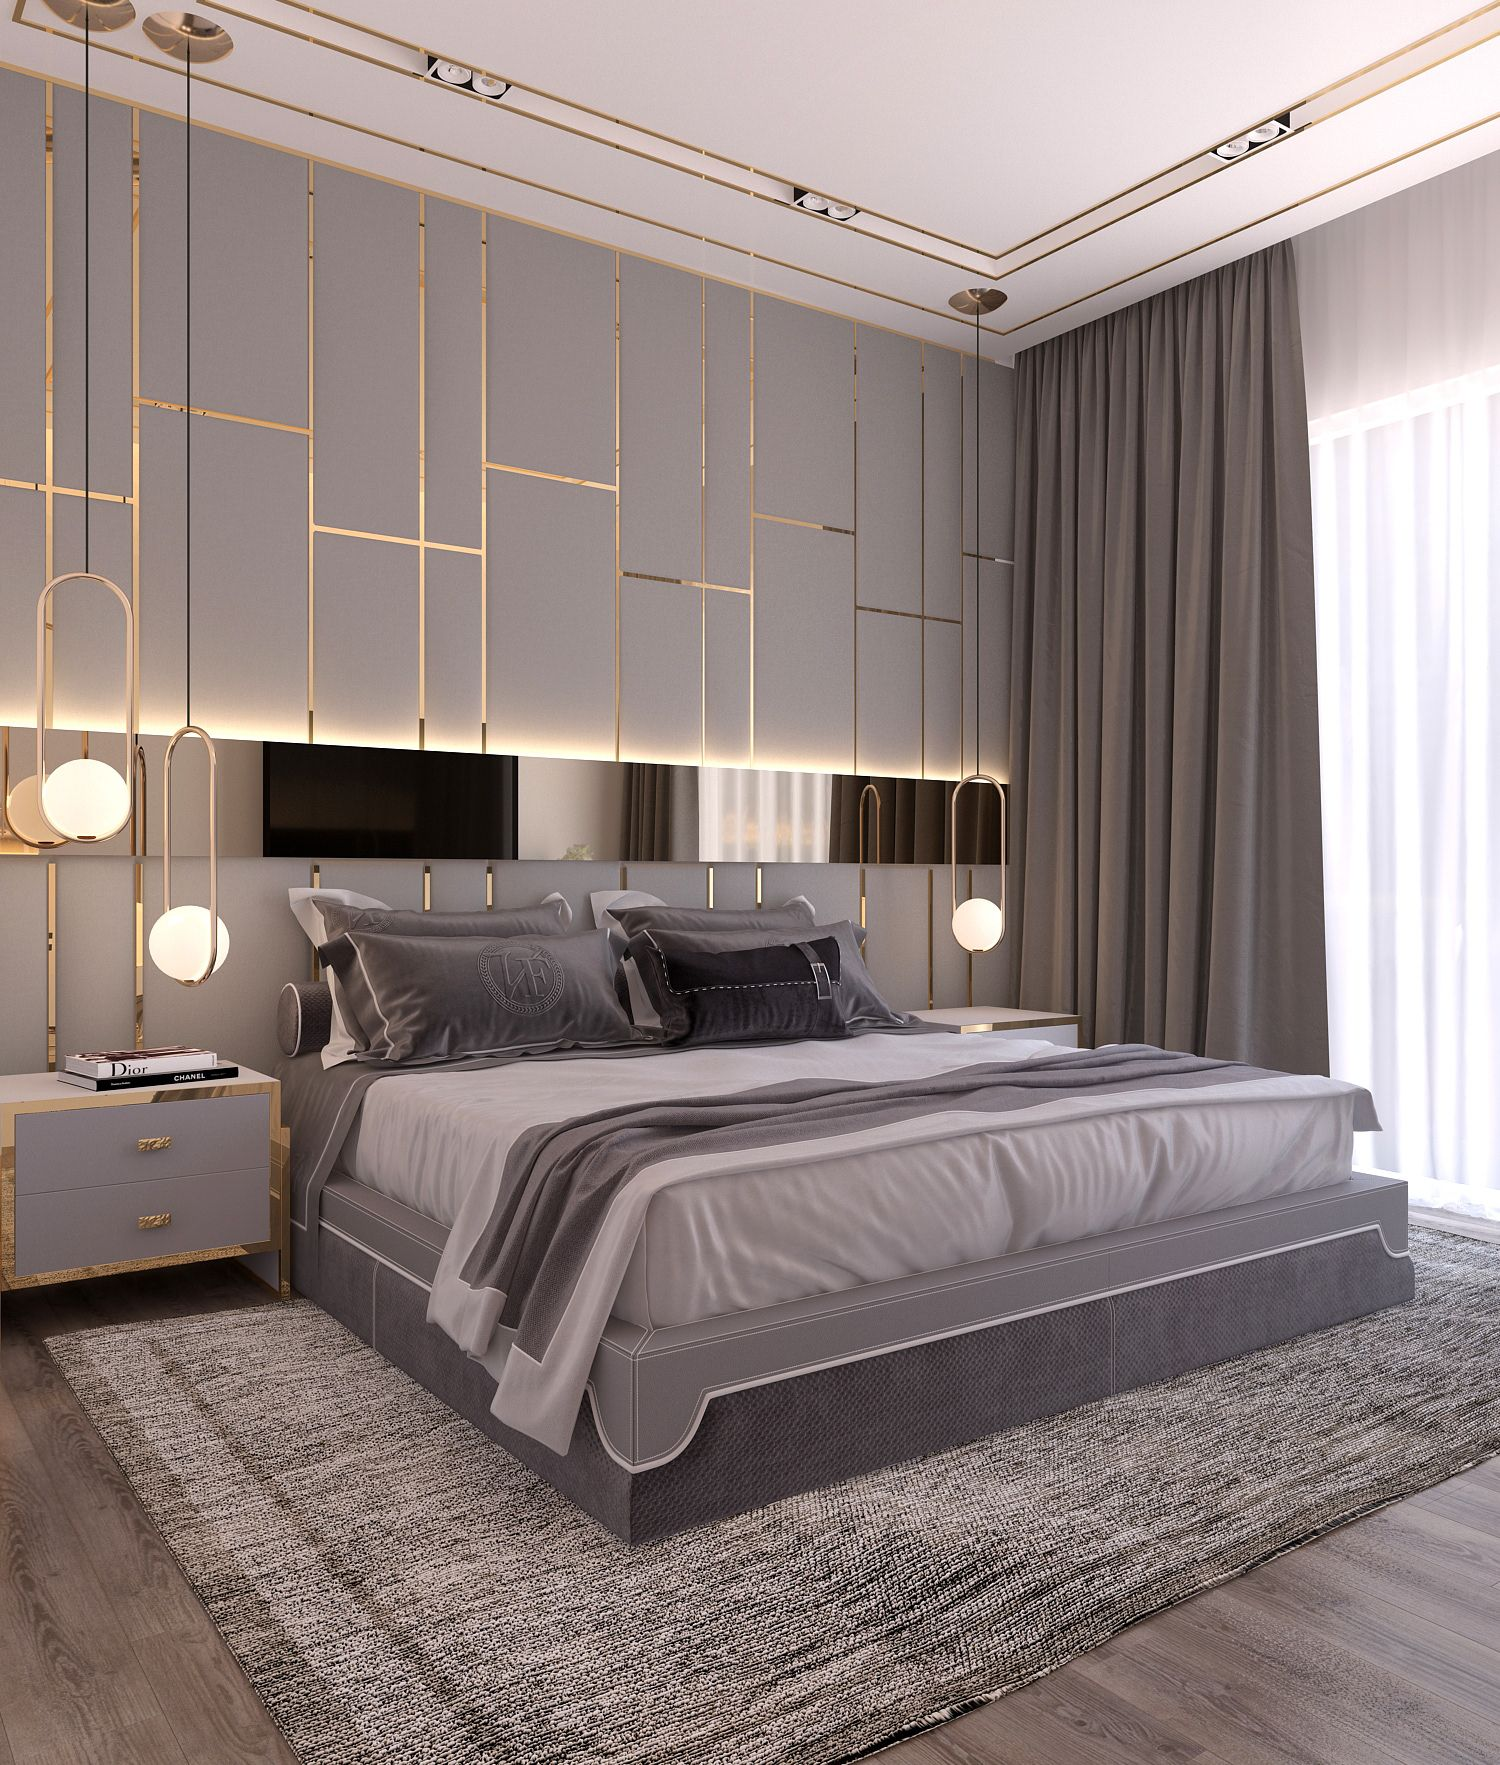 20 Best Small Modern Bedroom Ideas: Modern Style Bedroom *Dubai Project On Behance